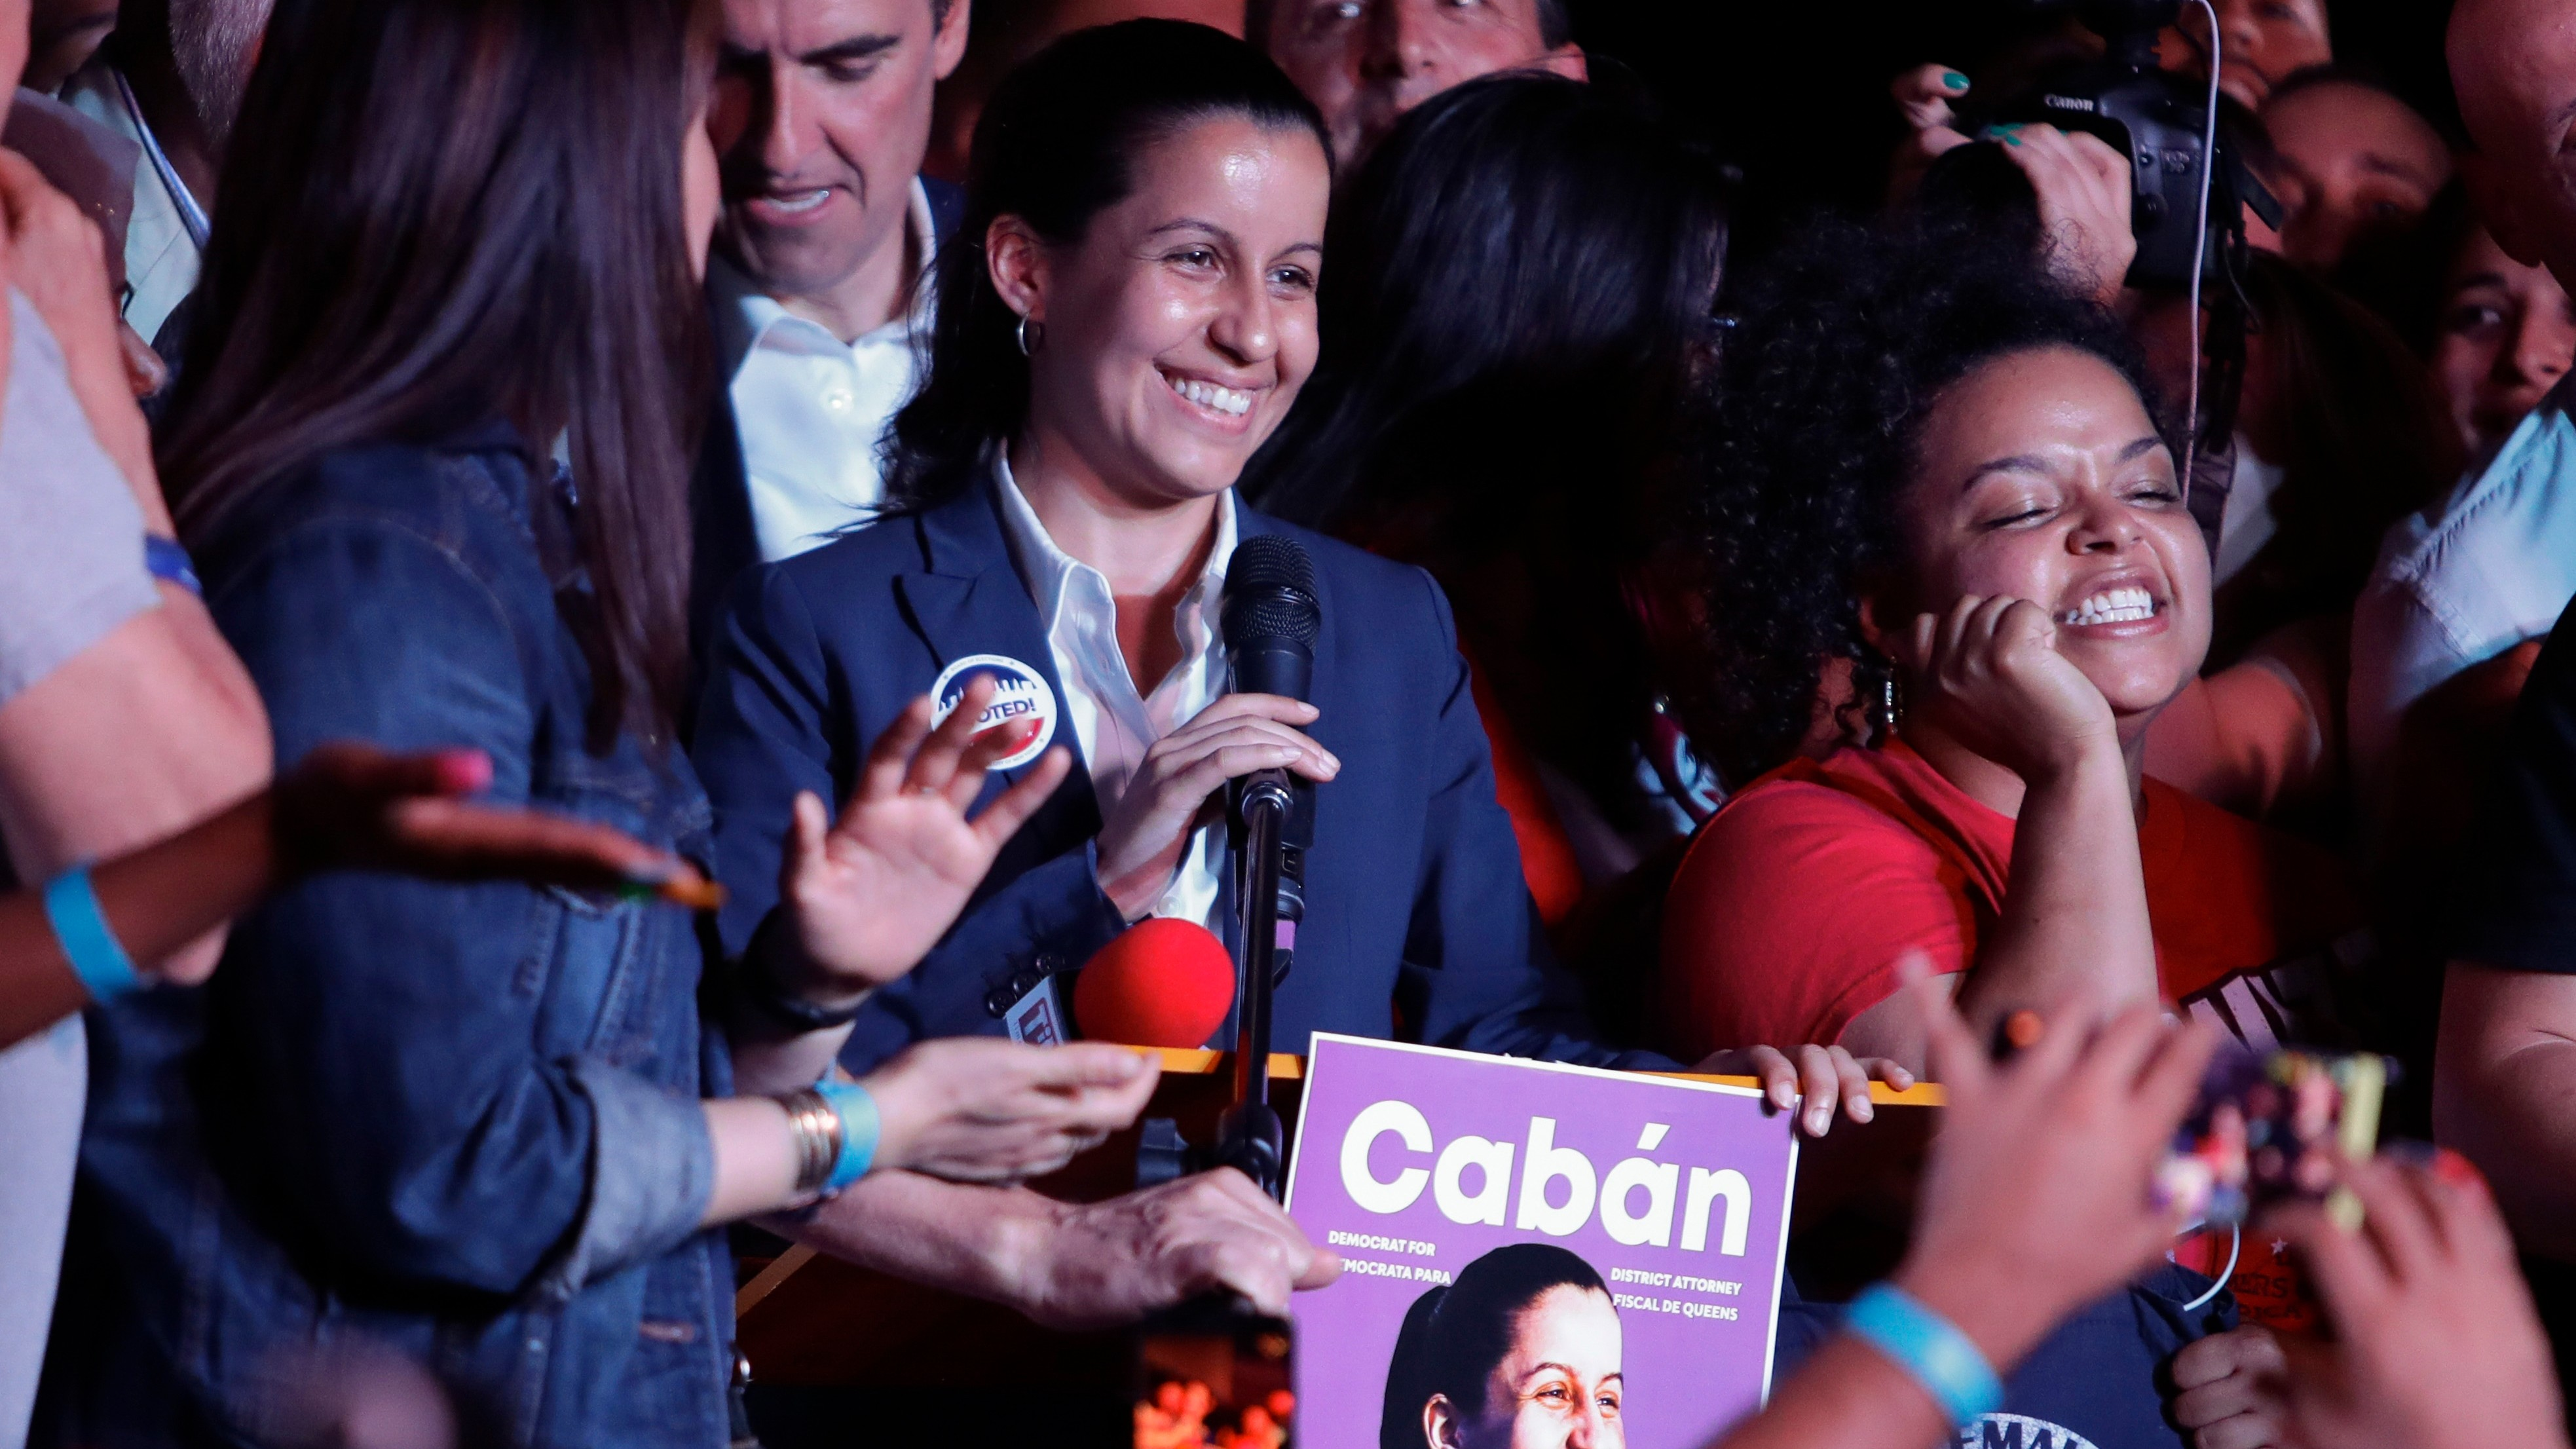 The Progressive Left Just Scored Another Stunning Victory With Tiffany Cabán